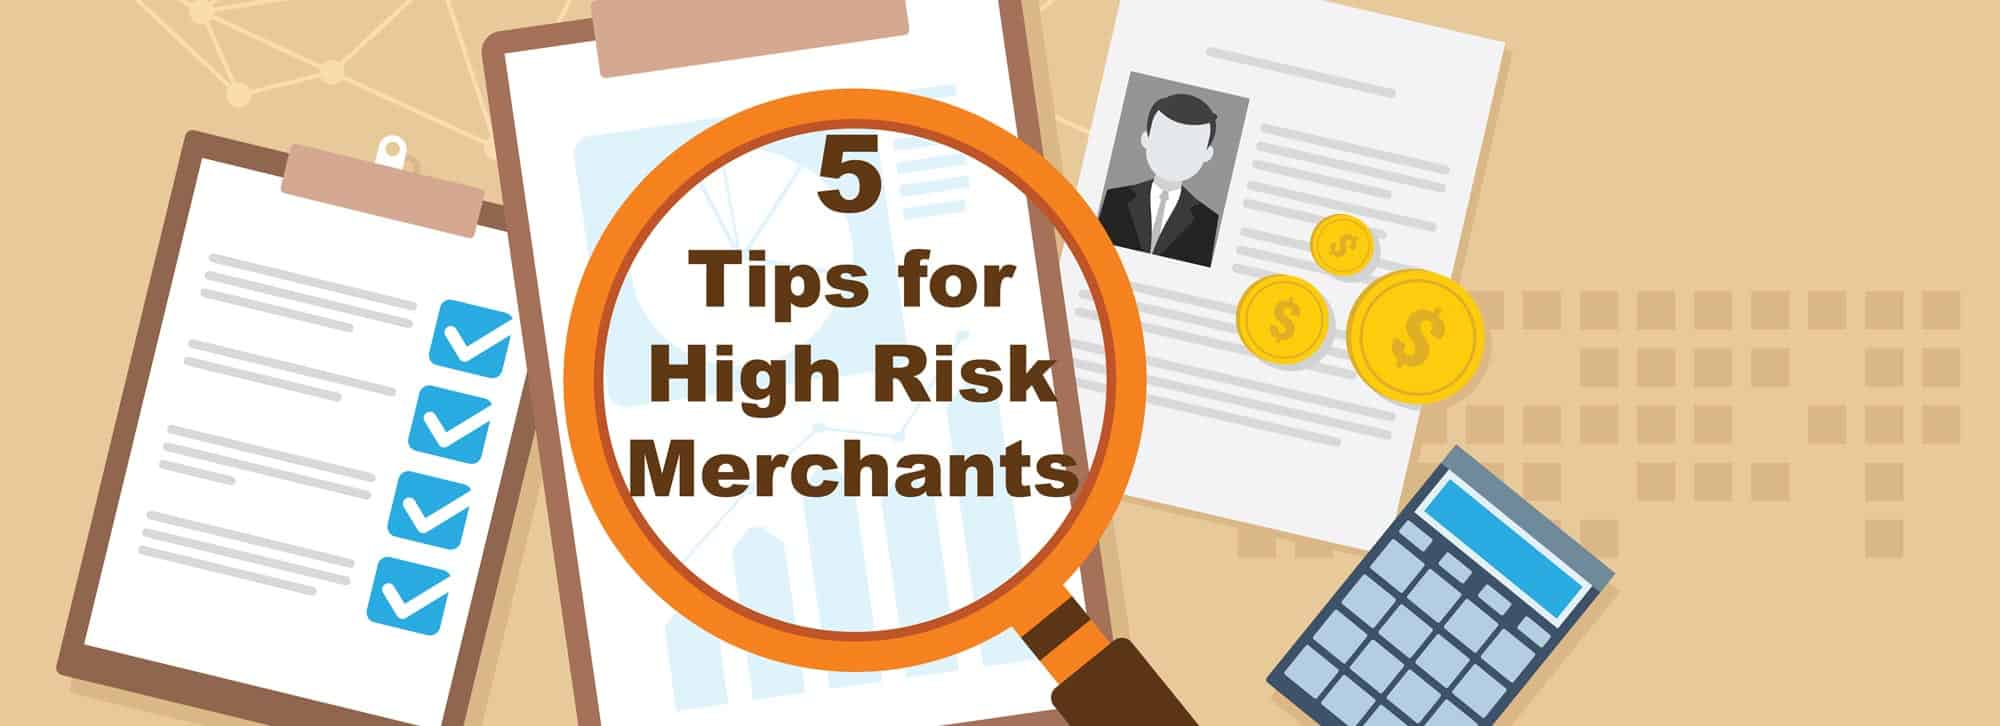 5 tips for high risk merchants